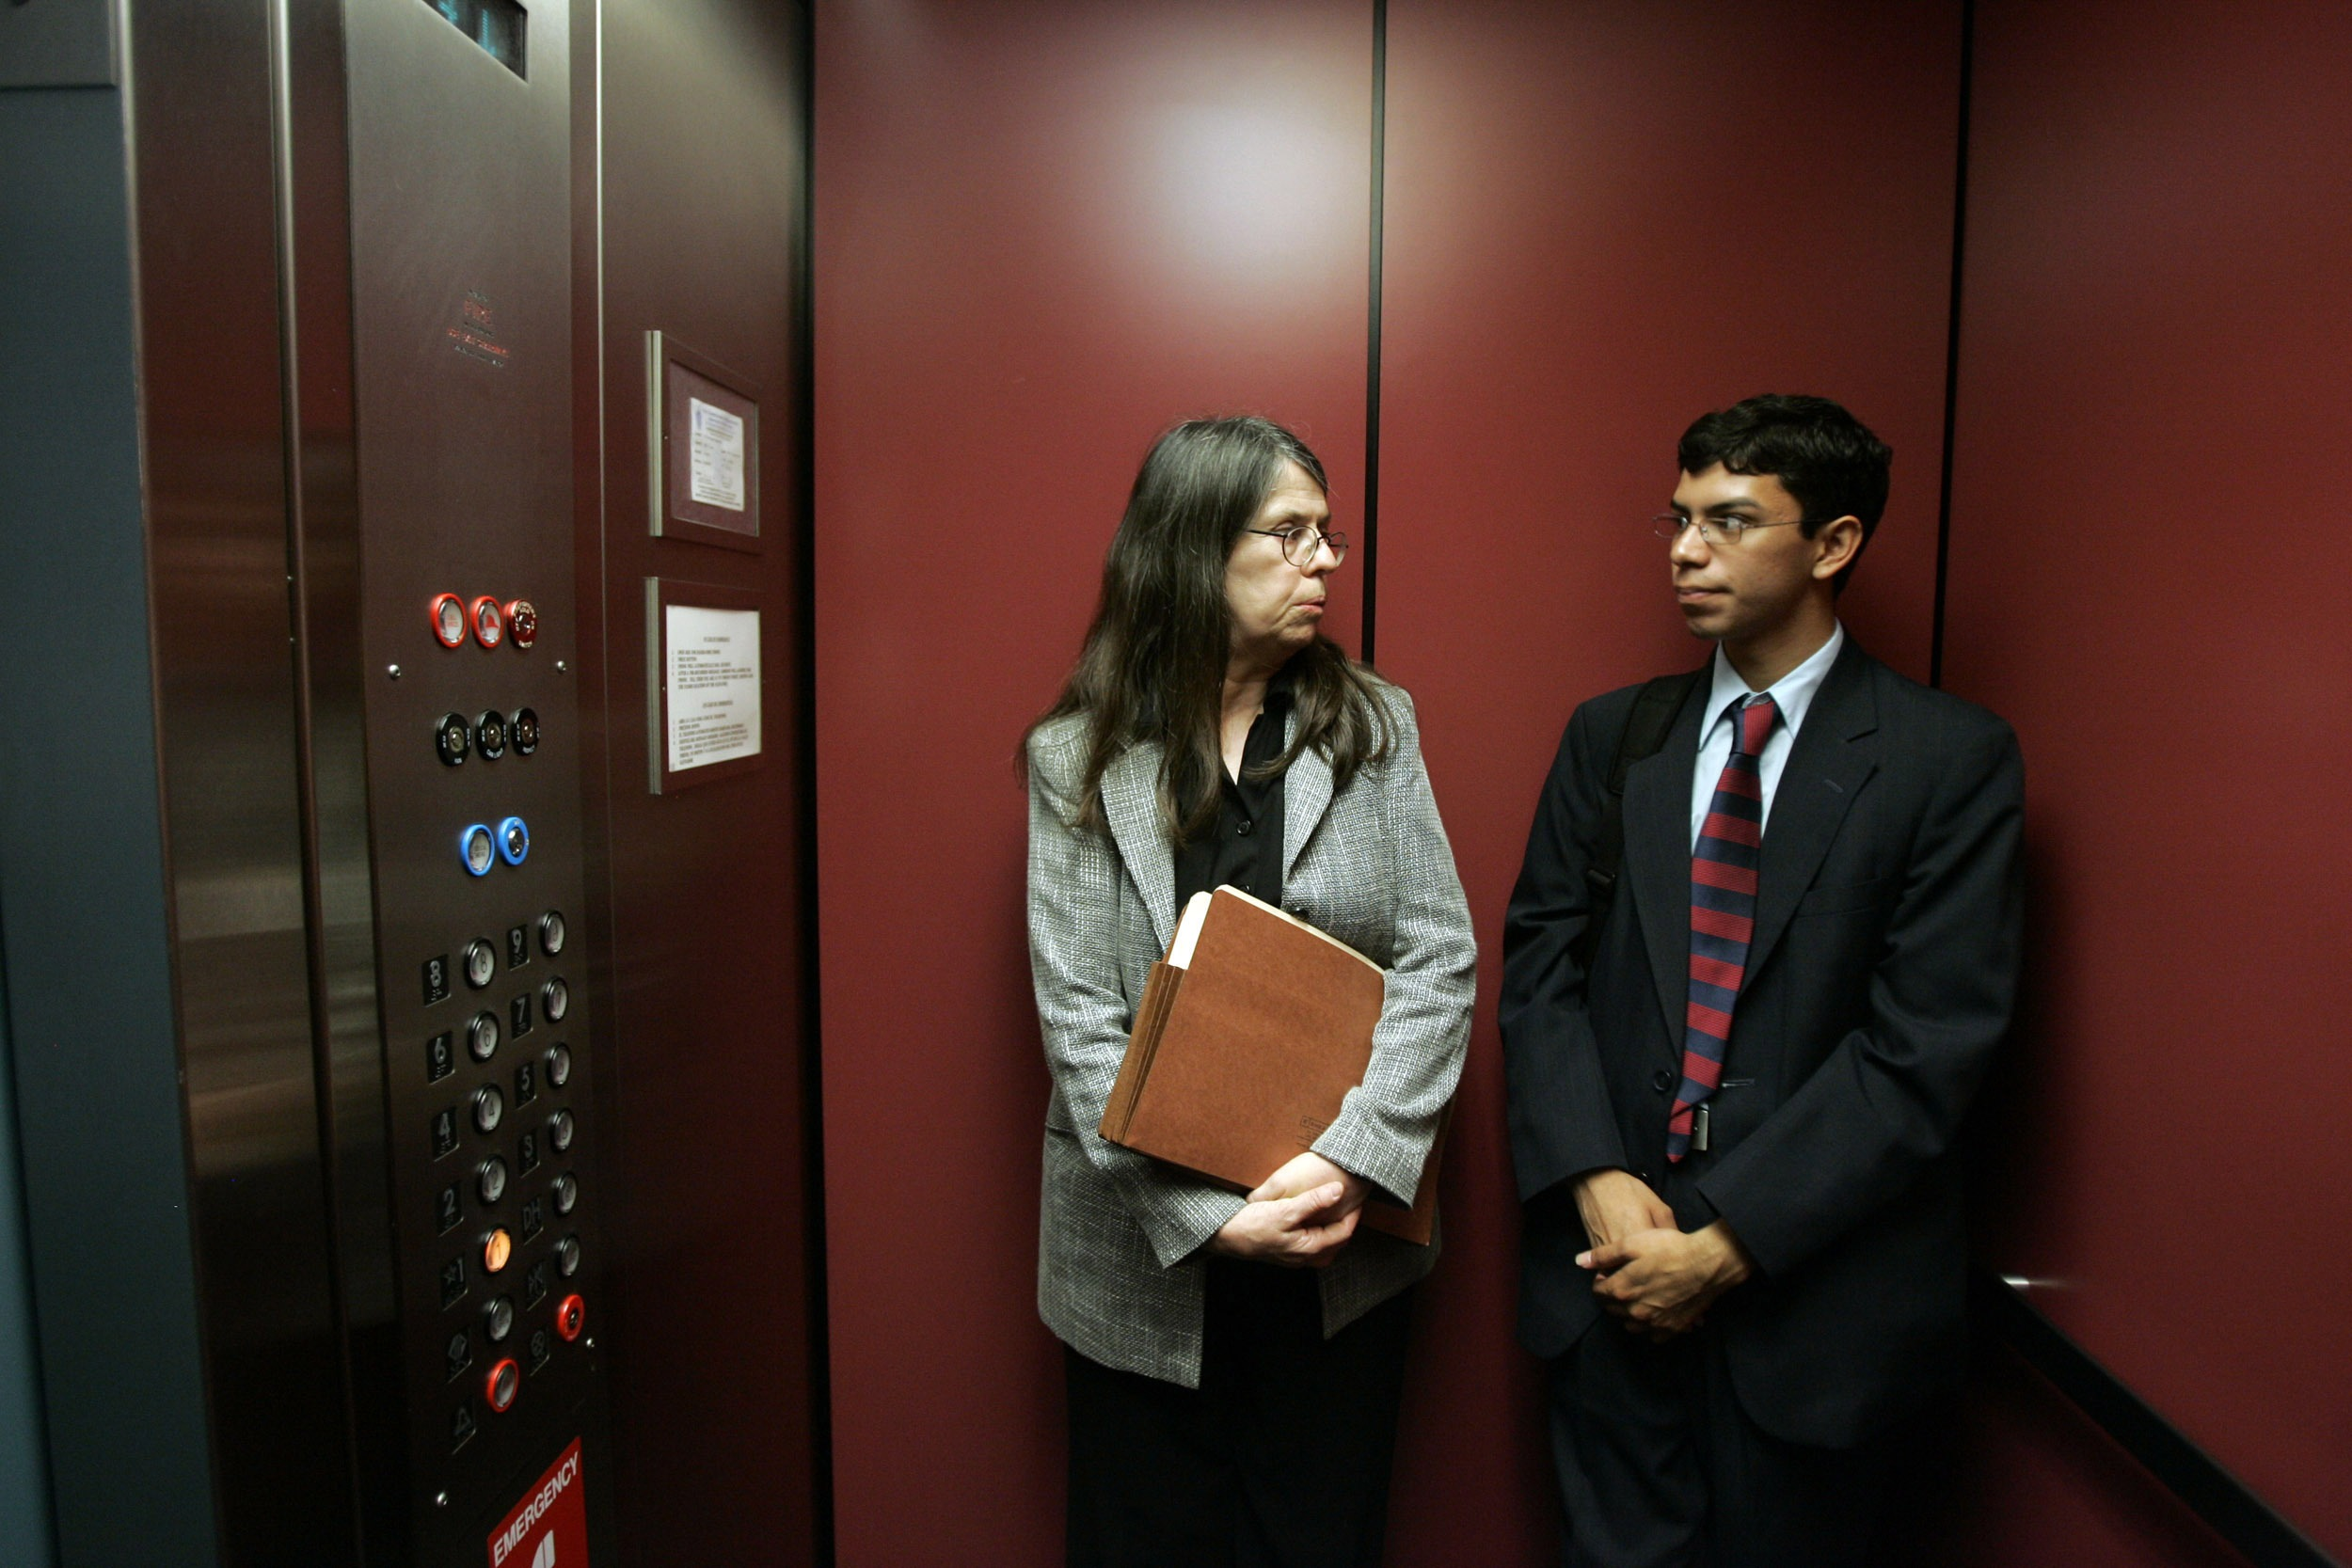 Woman and young man in suit holding papers look at each other in elevator